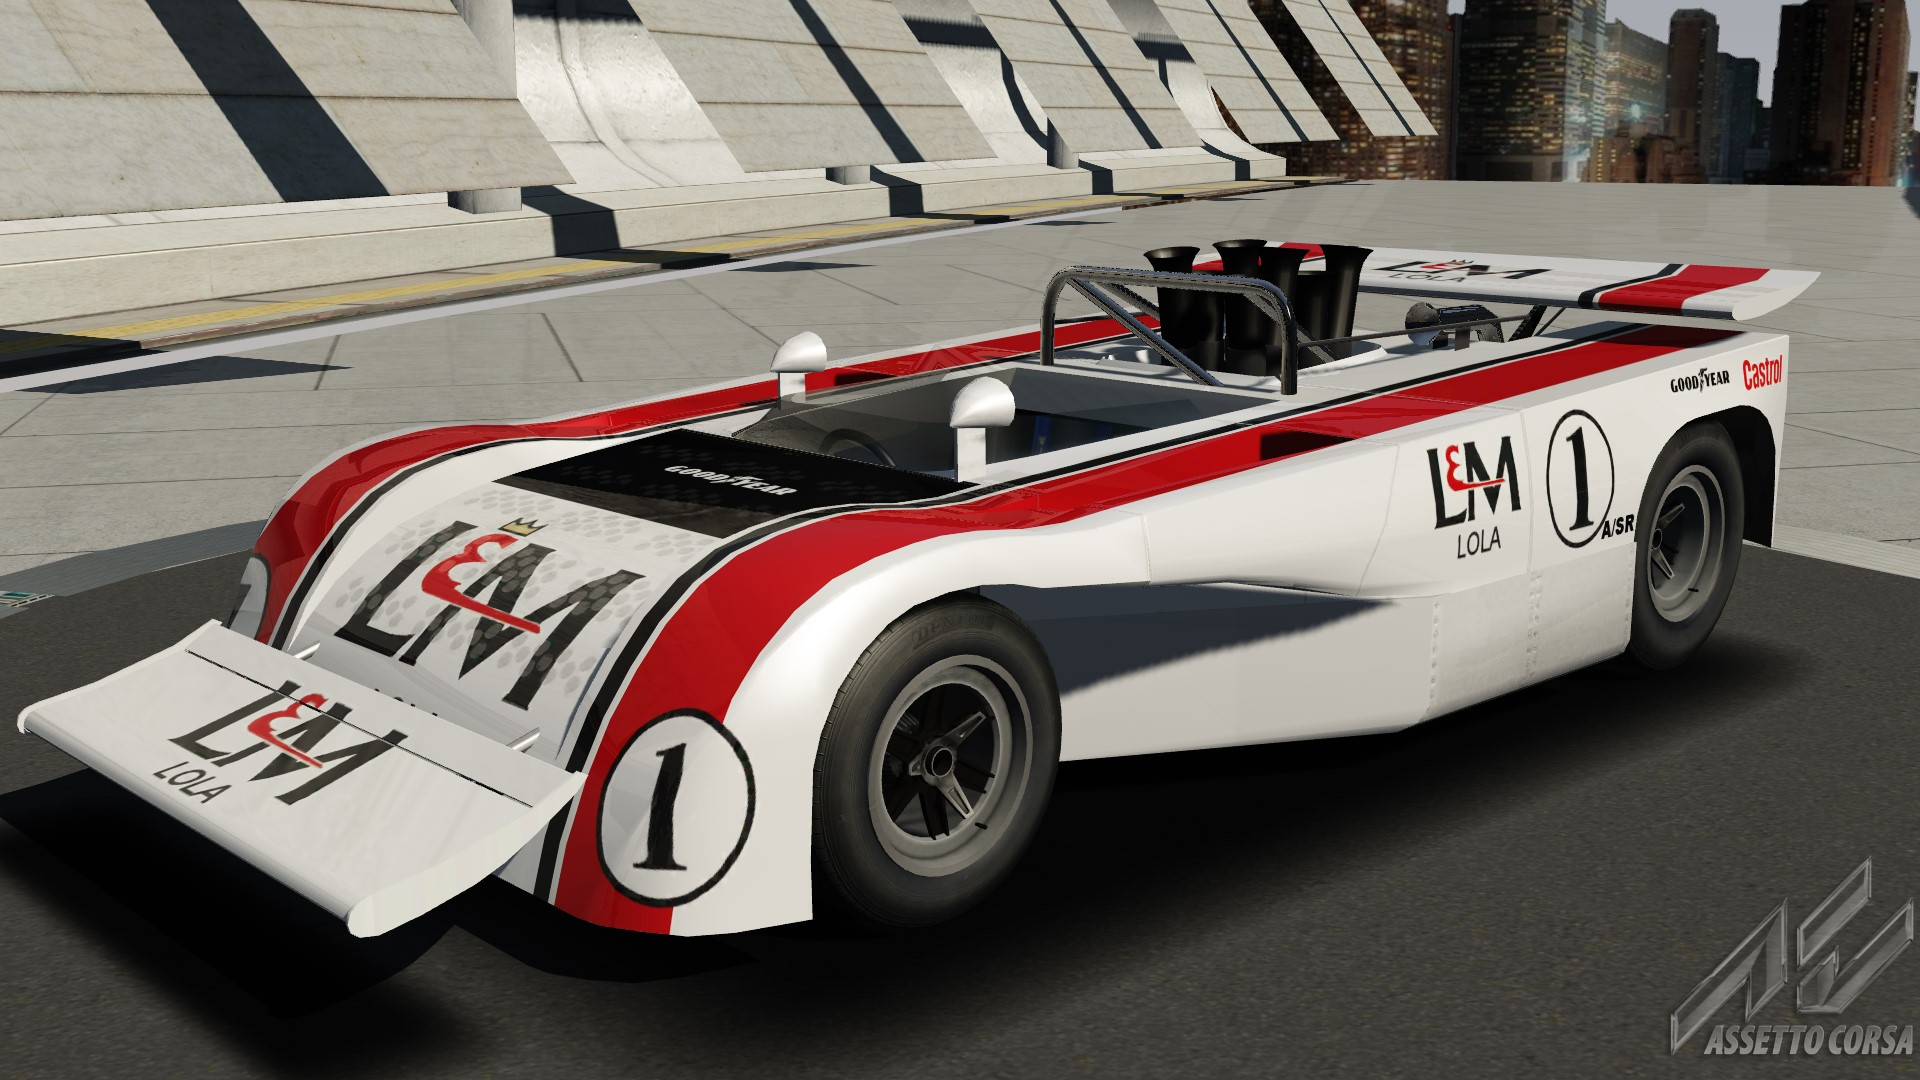 T260 - Lola - Car Detail - Assetto Corsa Database